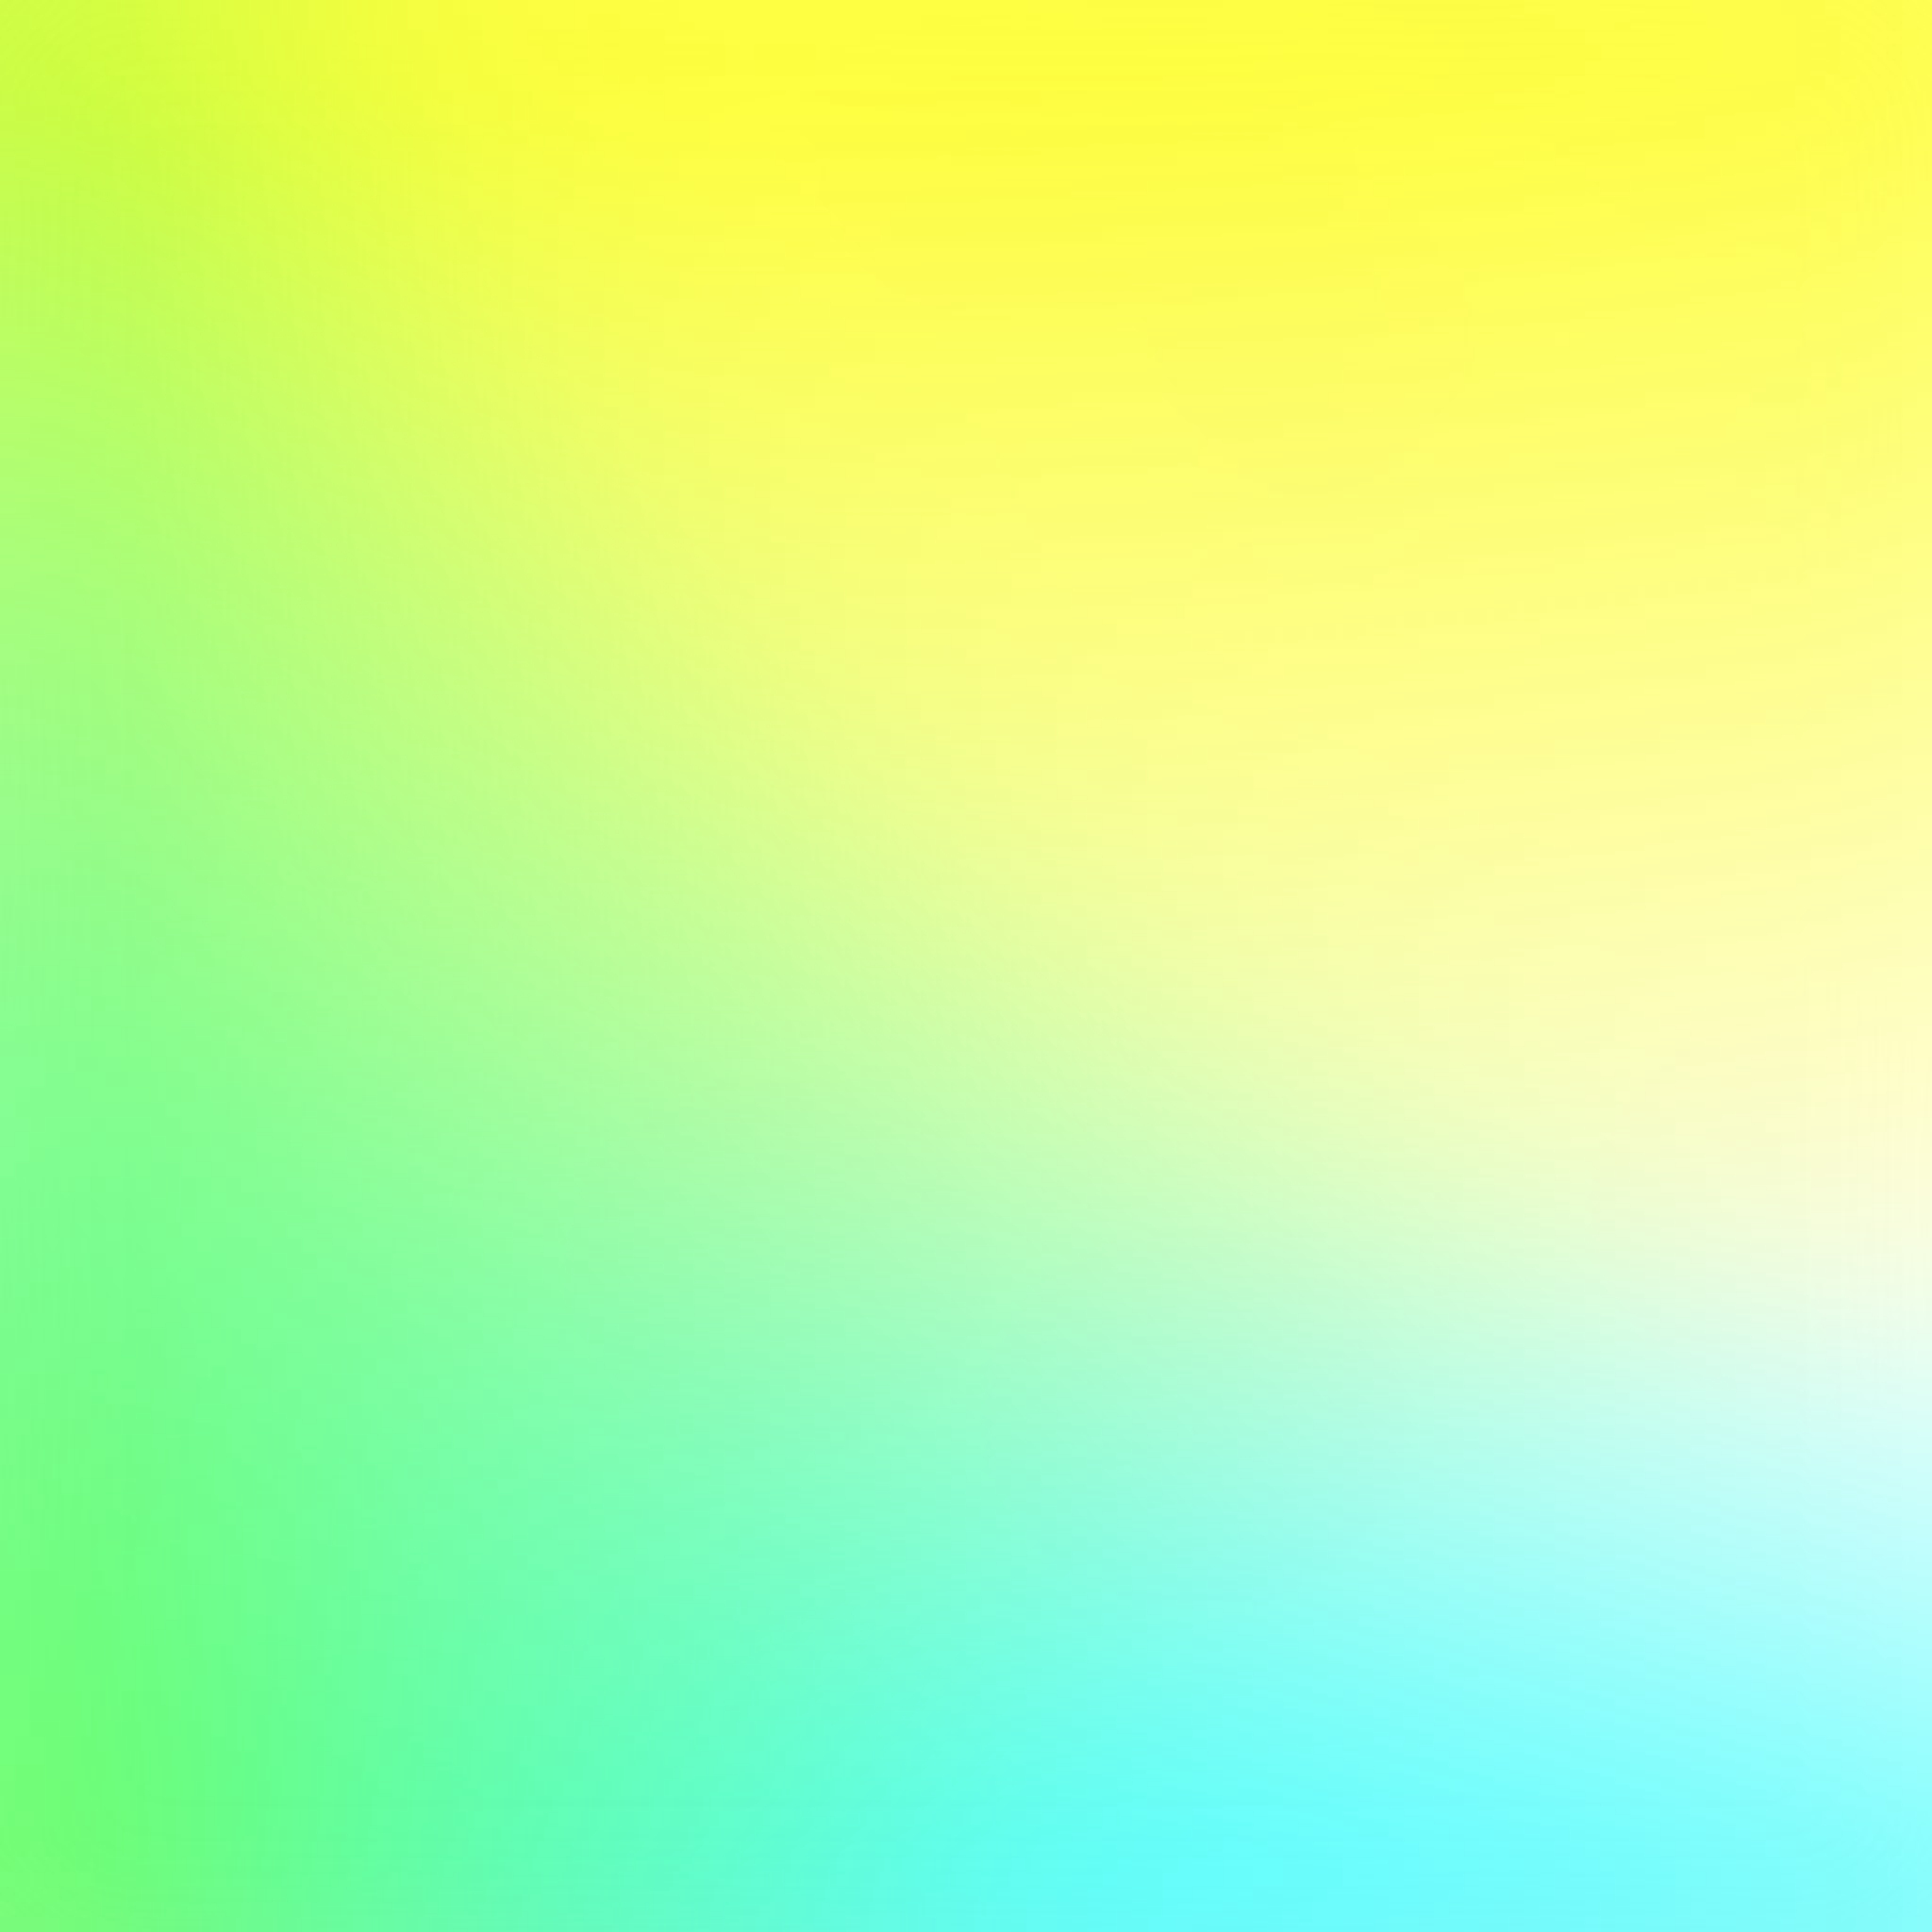 Neon Yellow Wallpaper - WallpaperSafari